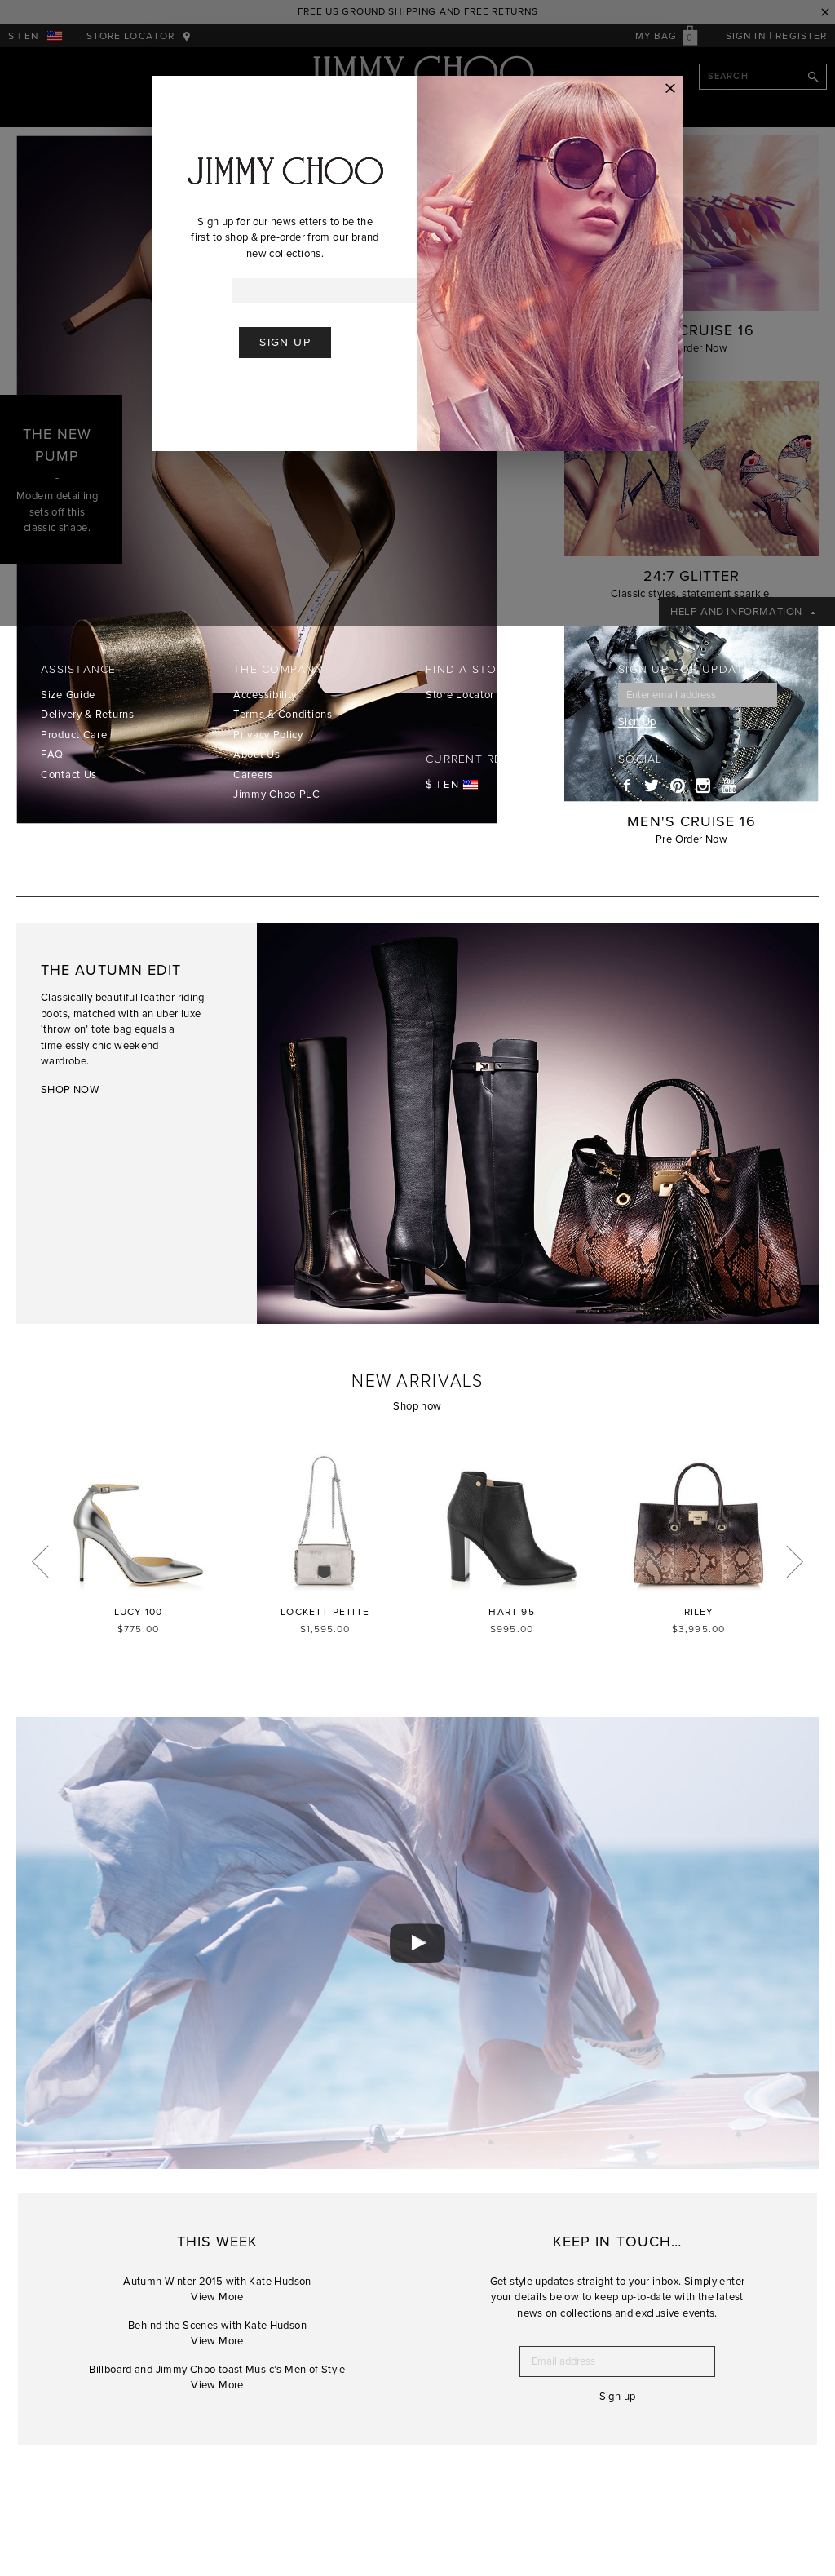 30b82ab843 Jimmy Choo Competitors, Revenue and Employees - Owler Company Profile